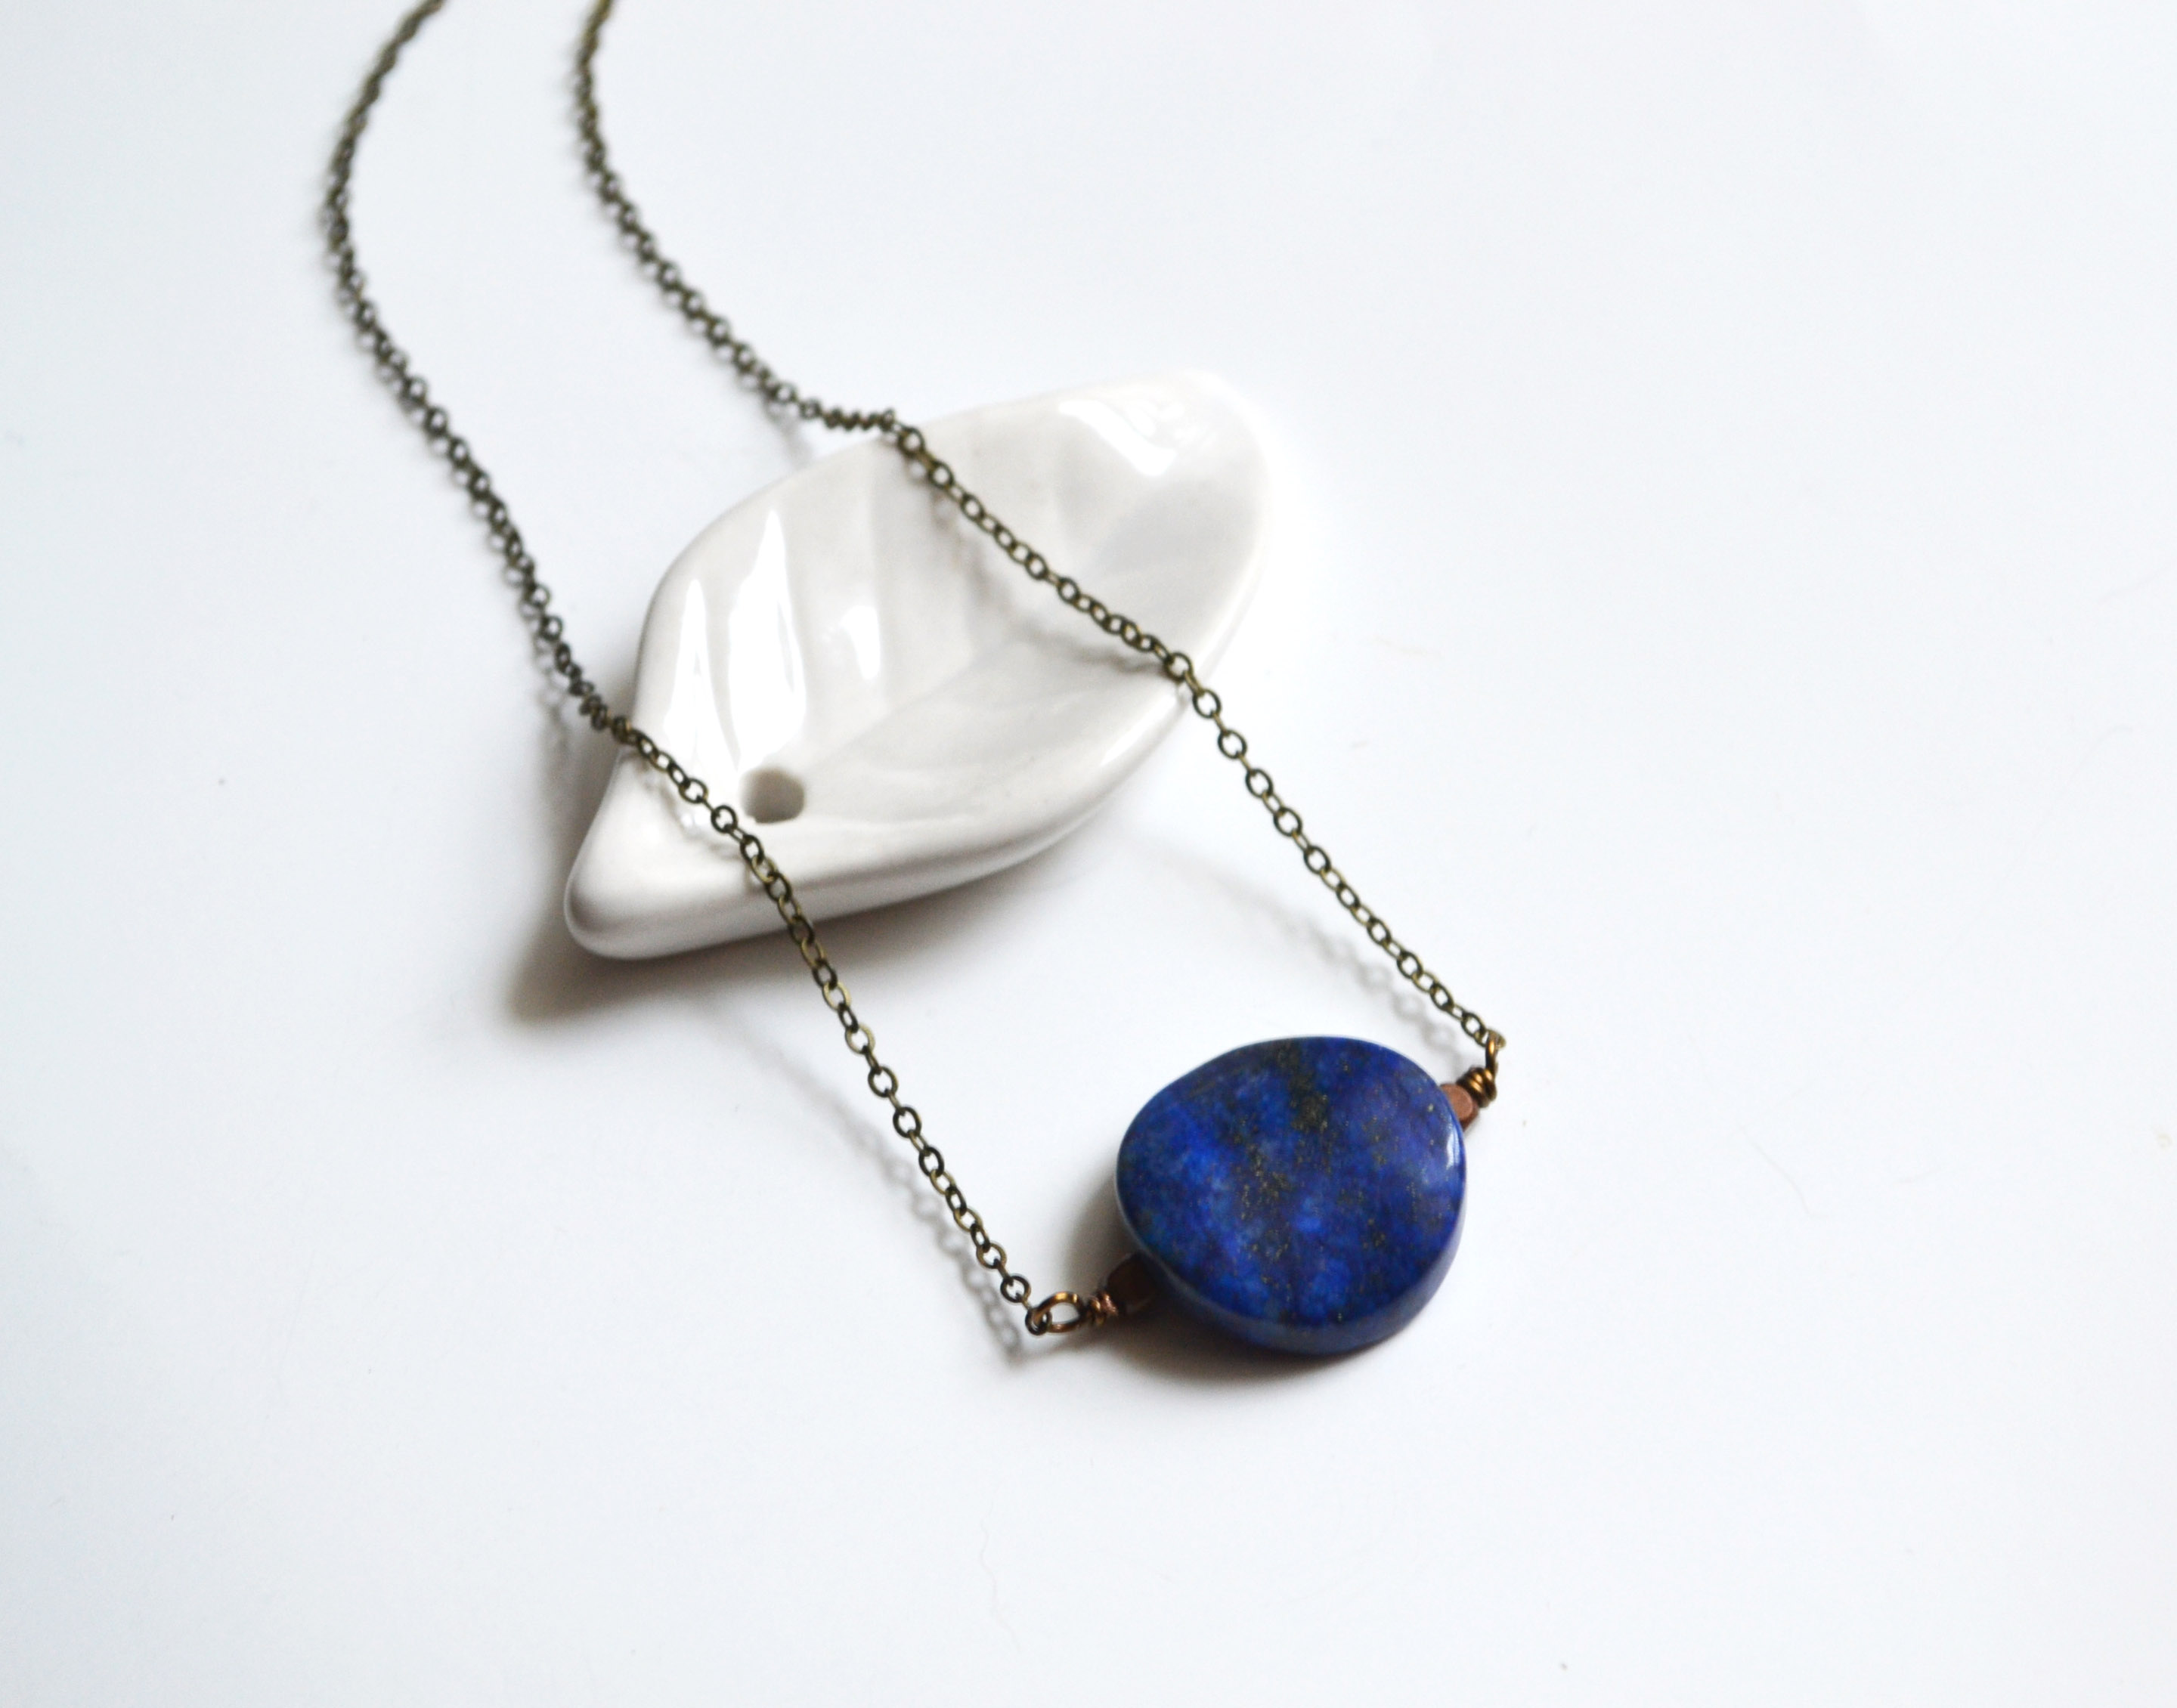 Necklaces with Navy Stones